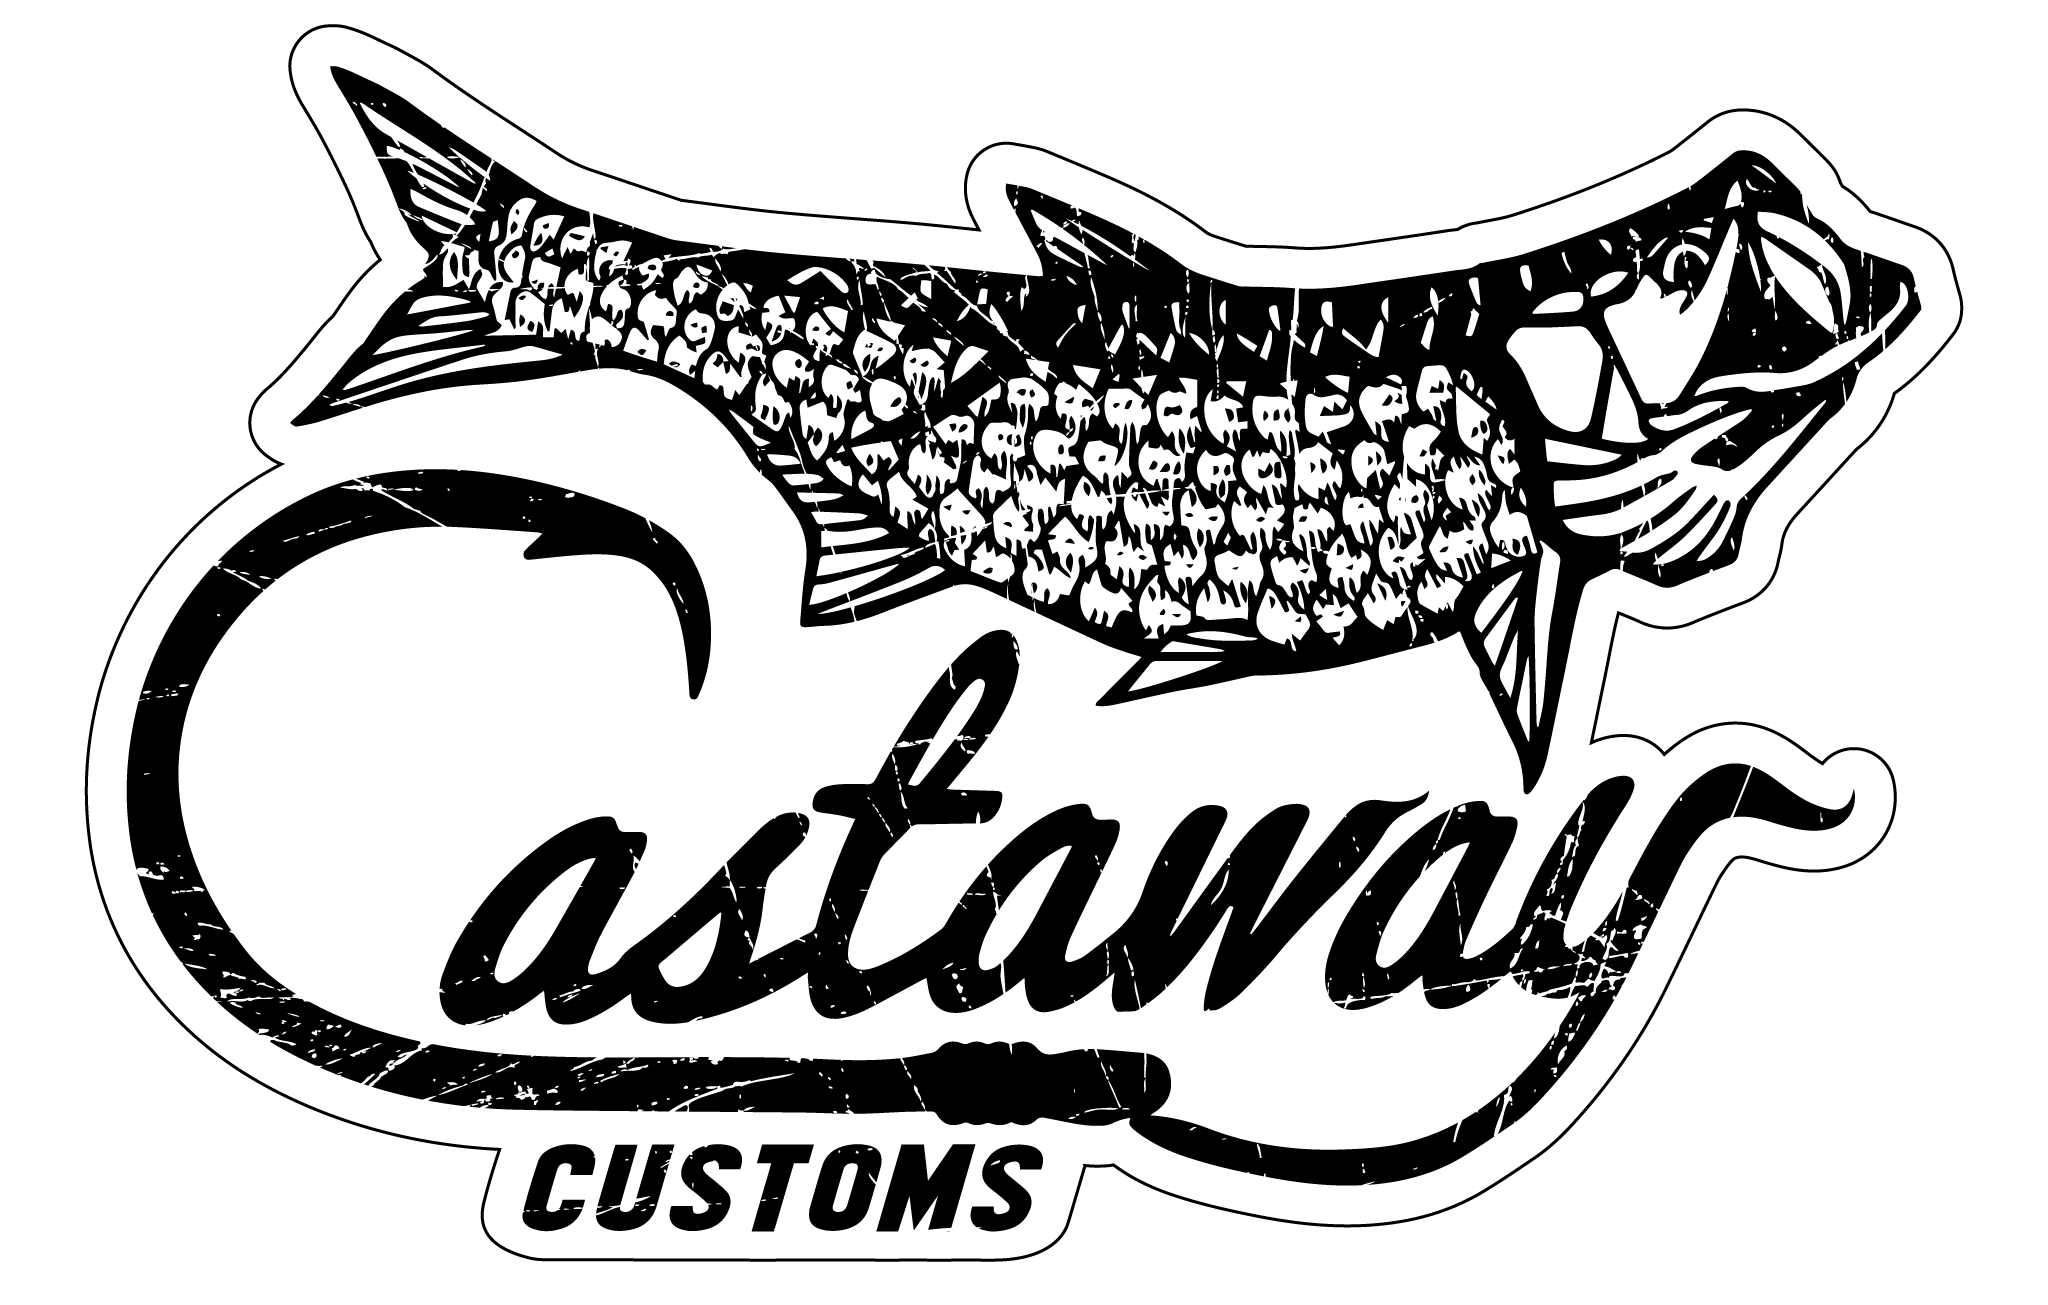 Category cruisers castaway customs. Clipart boat cabin cruiser